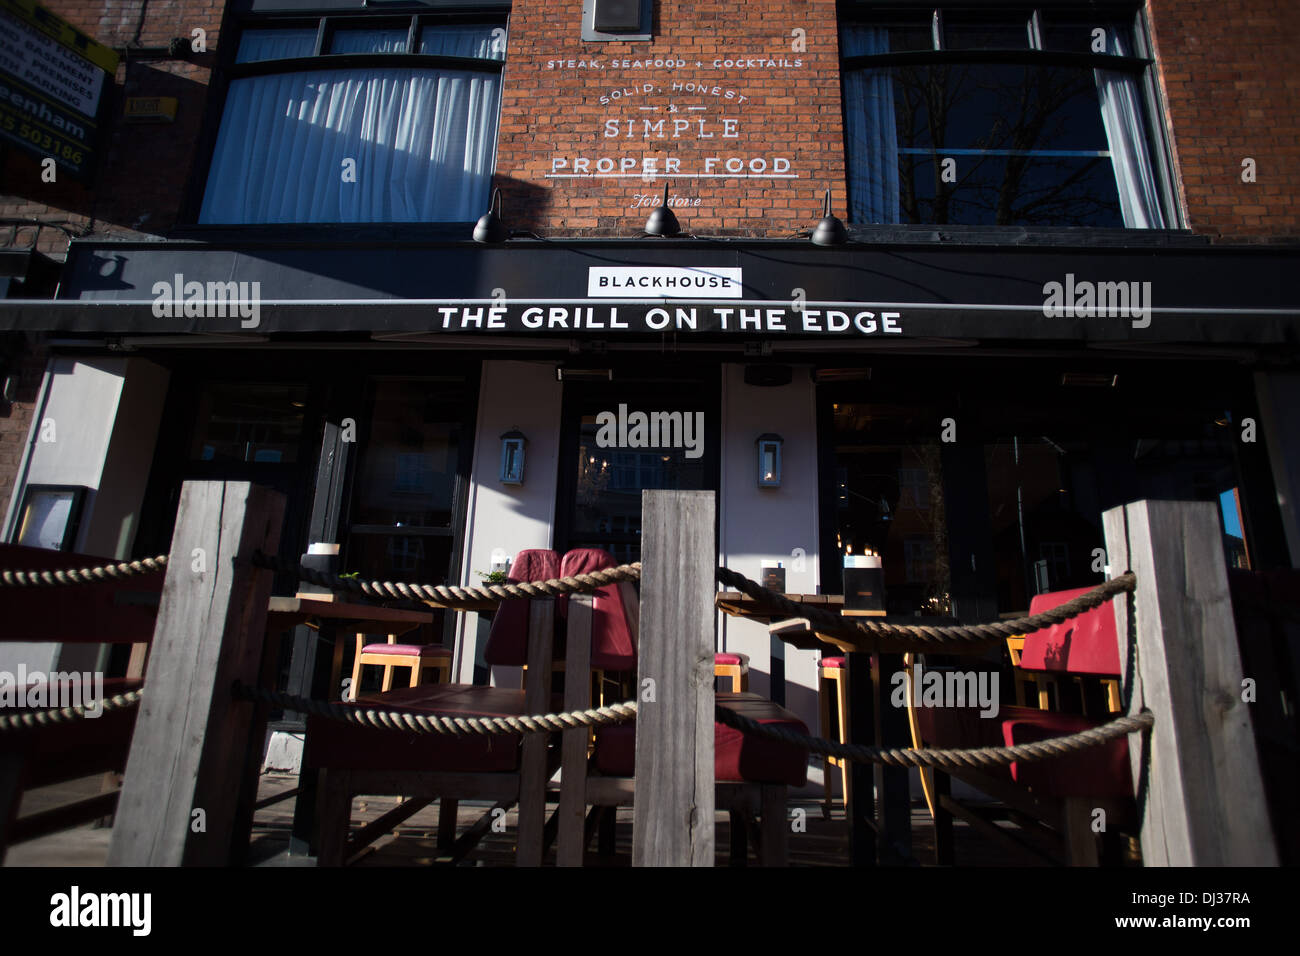 General views of bars , shops and cafes in Alderley Edge , Cheshire - Stock Image